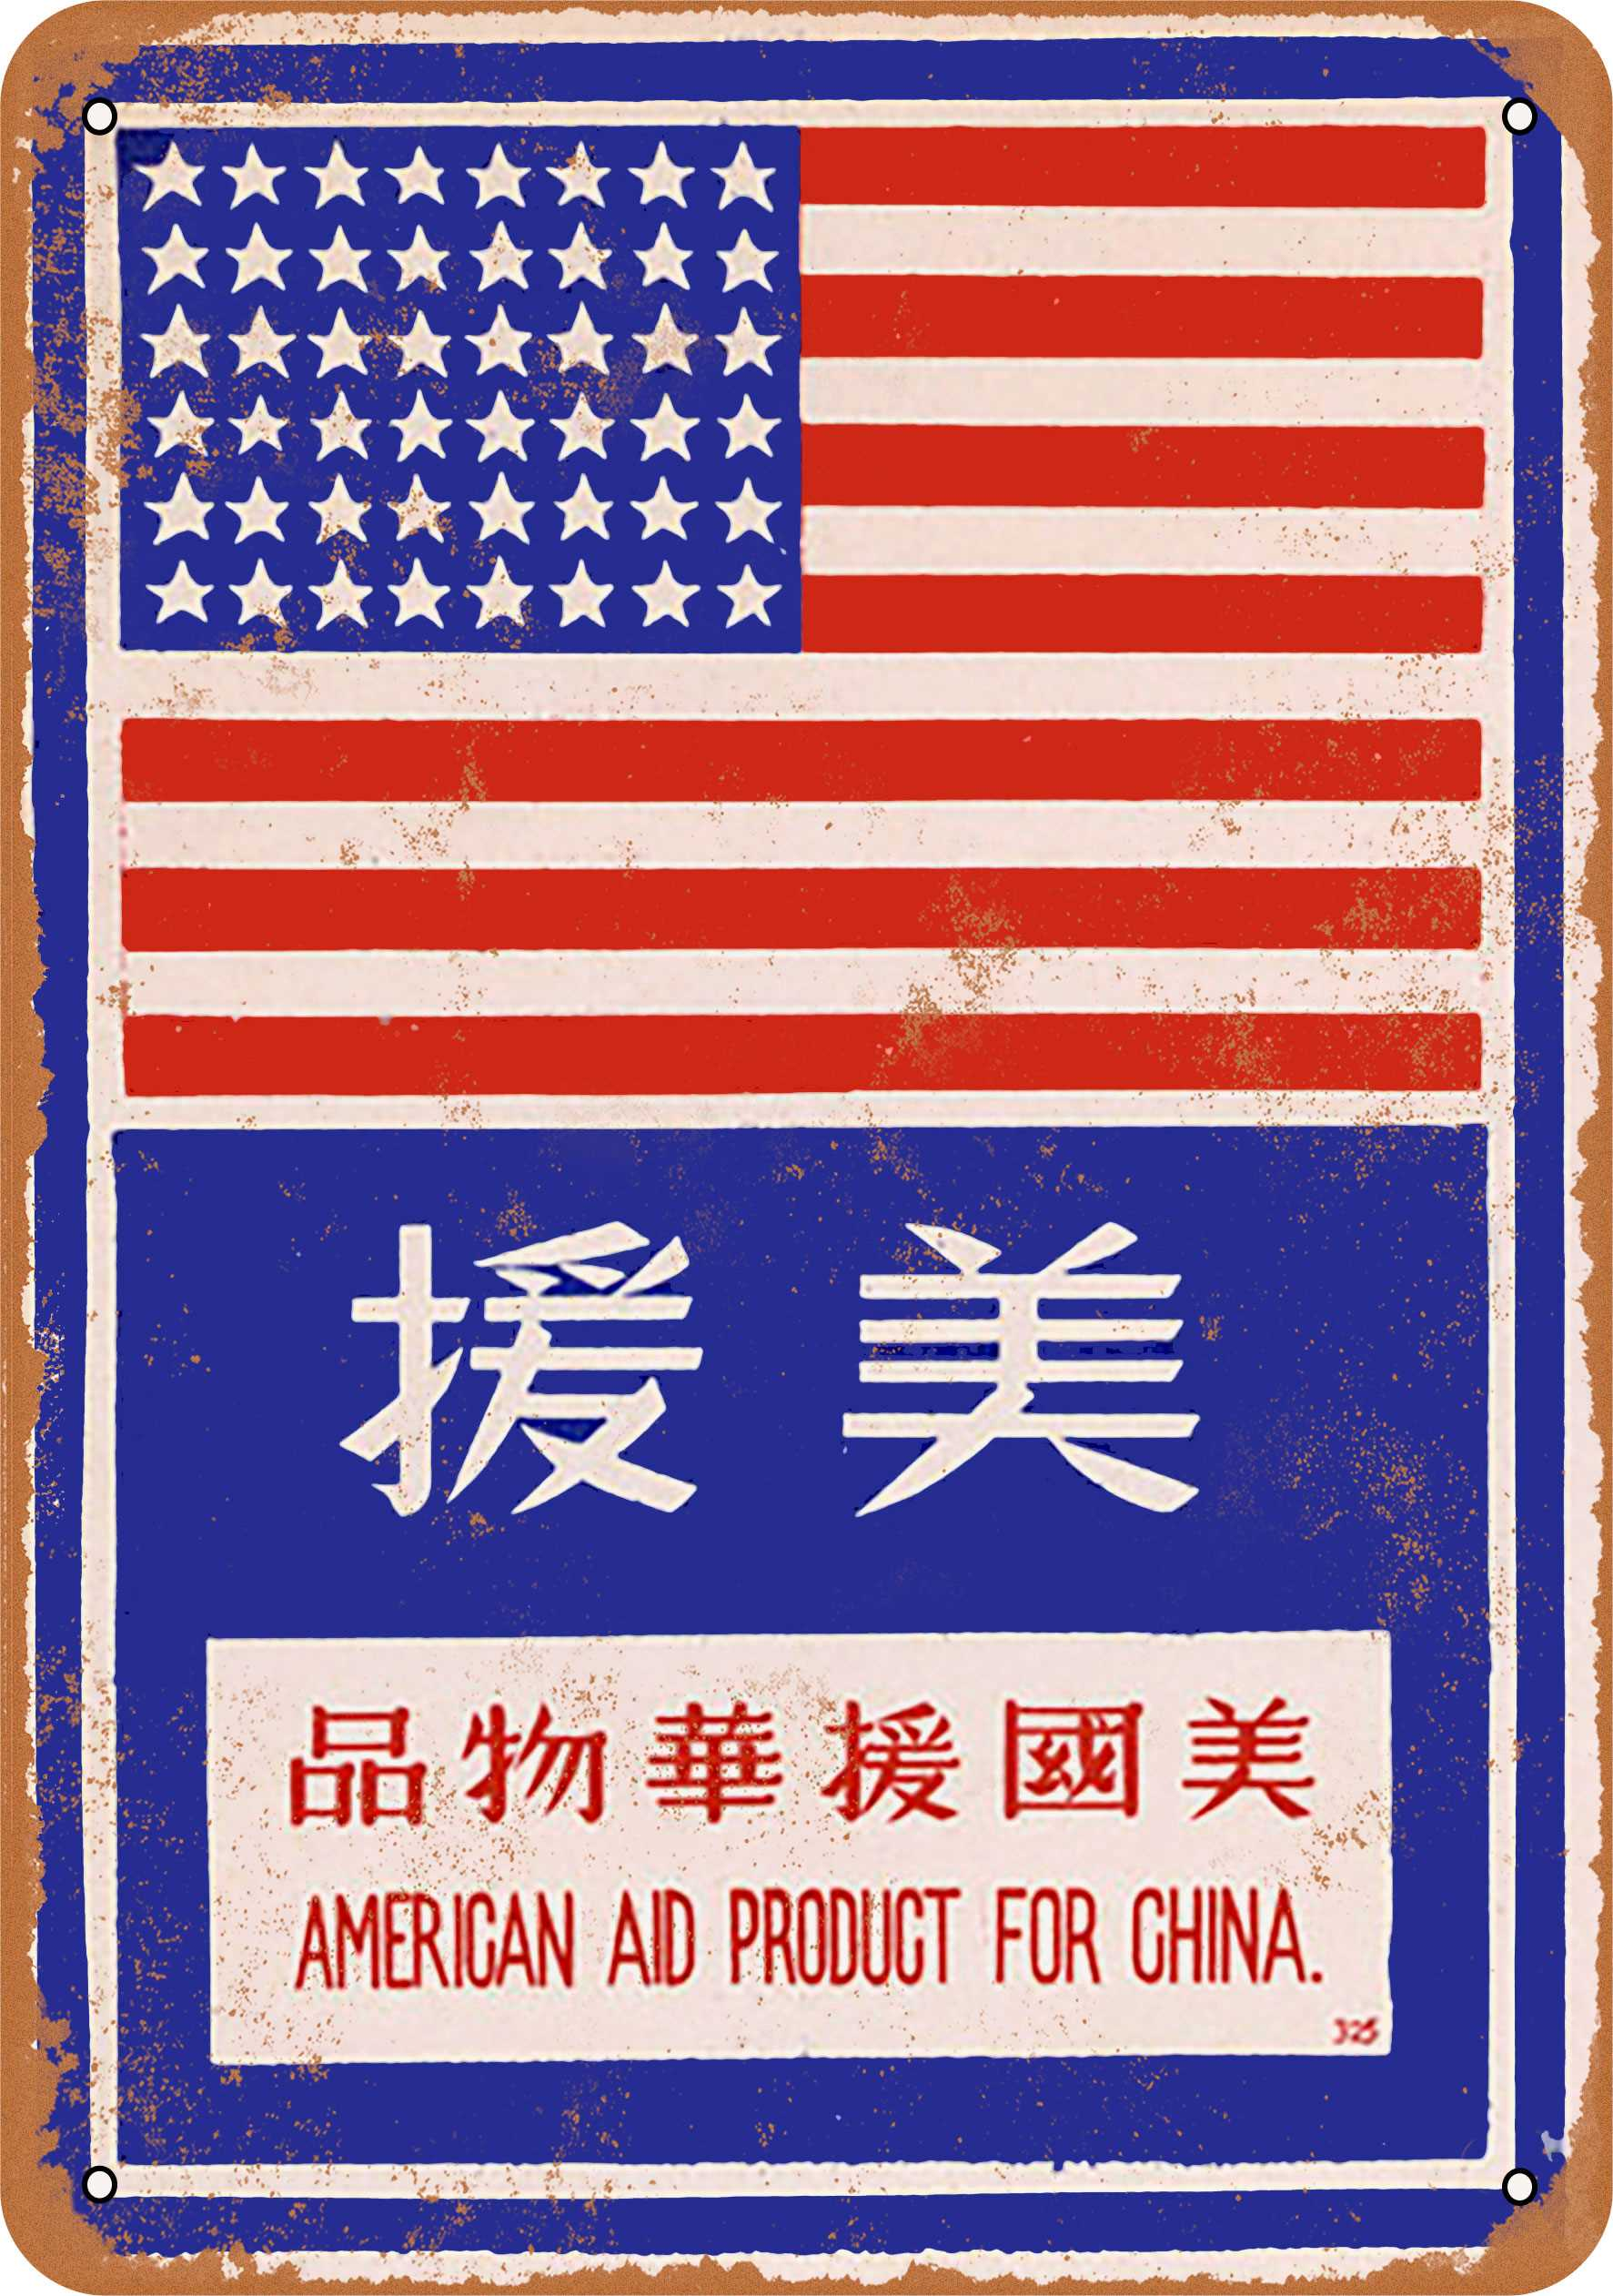 """9"""" x 12"""" 1948 American Aid Product for China Vintage Look Reproduction Metal Sign 50221L"""